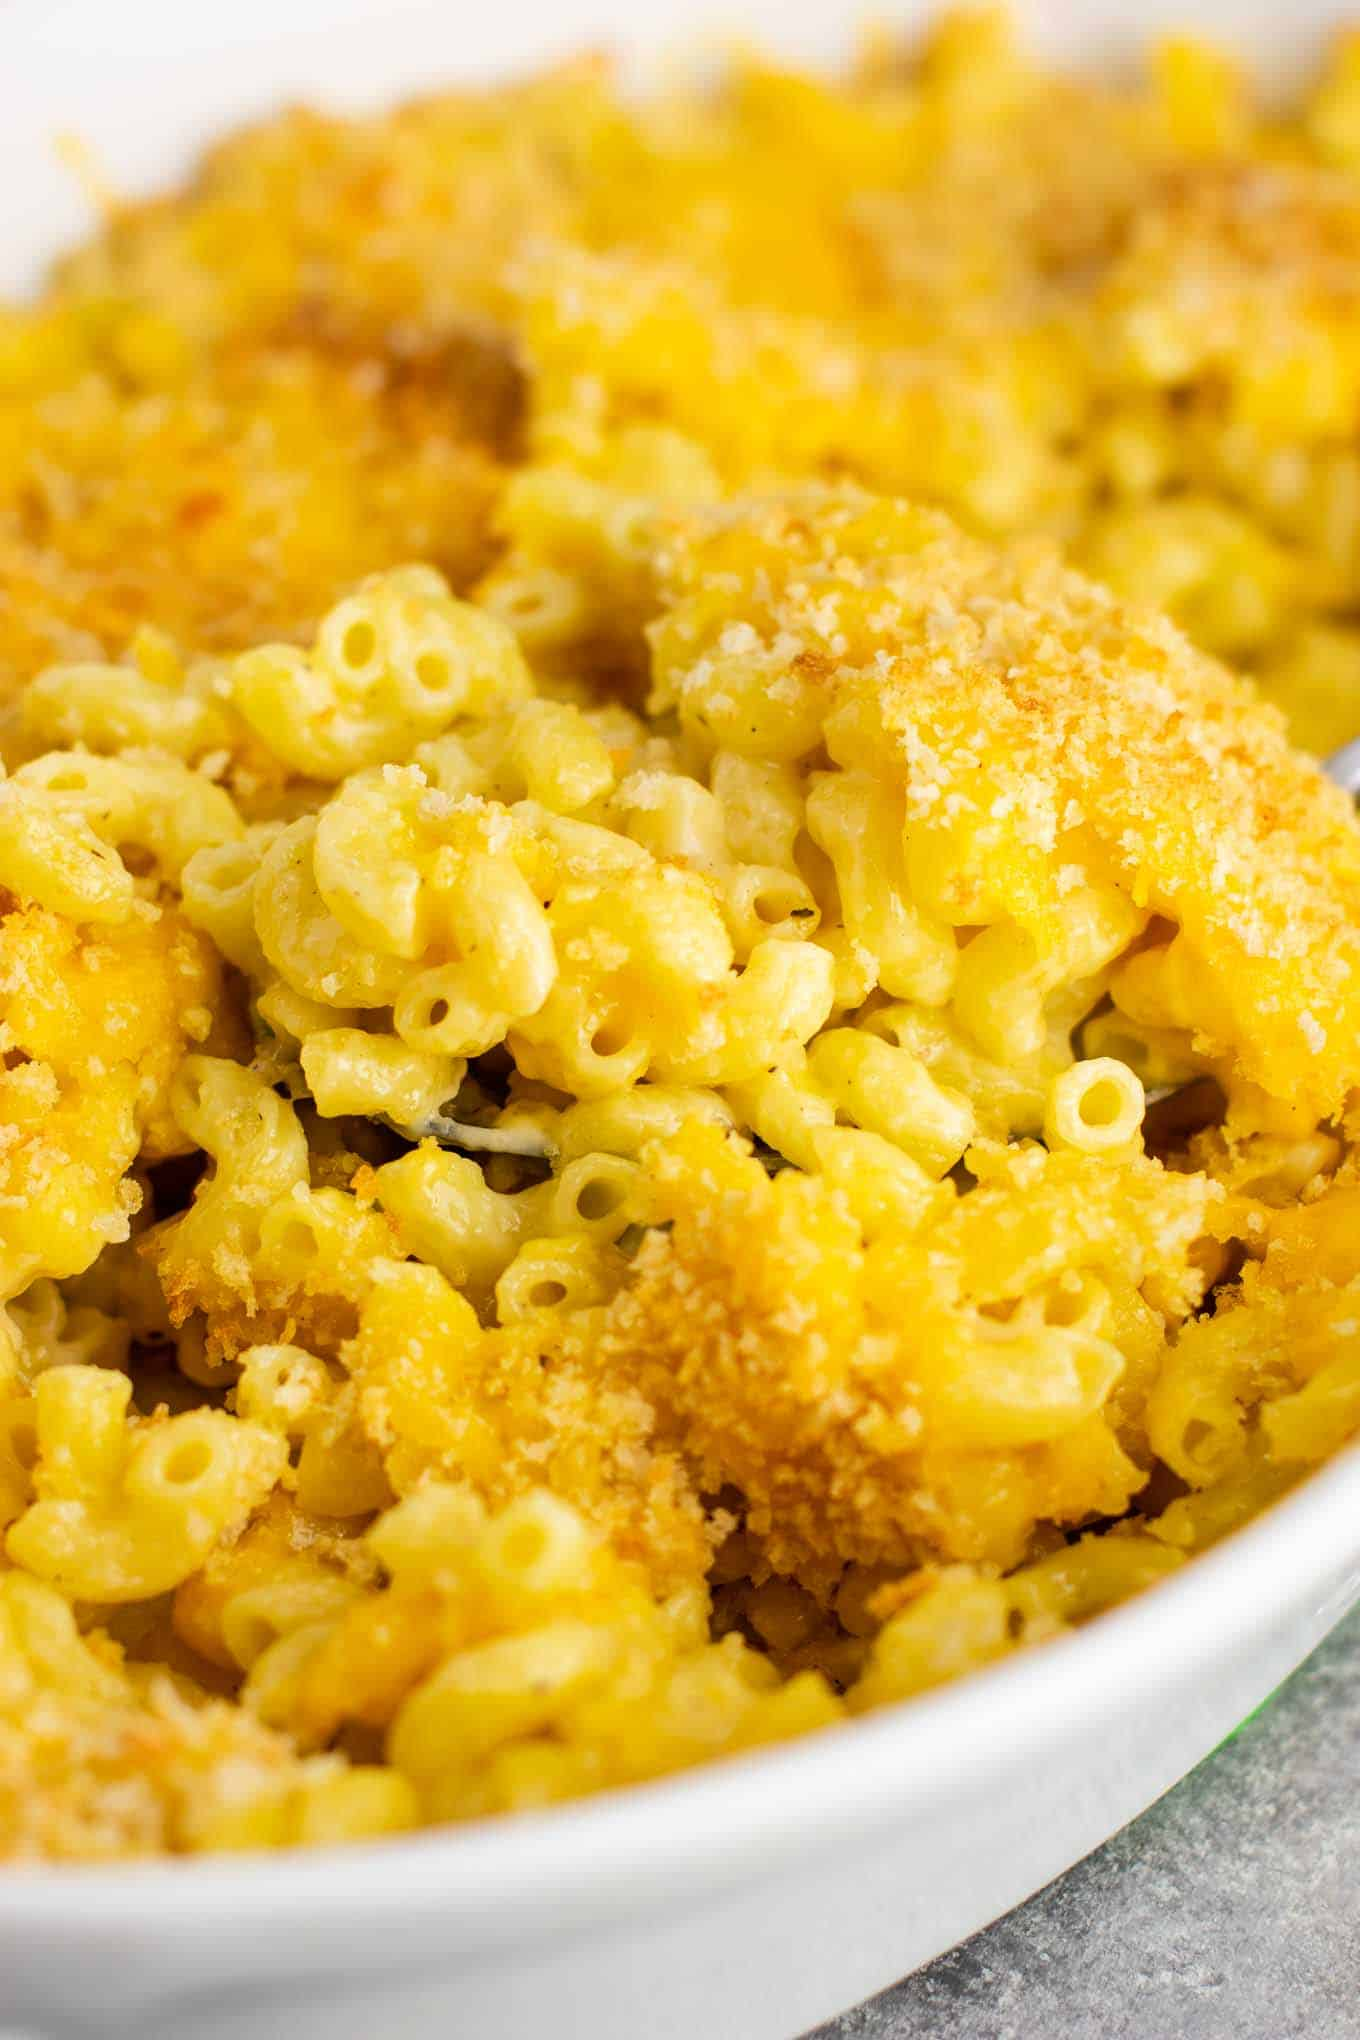 Baked Mac and Cheese - Classic baked comfort food that the whole family will love! #macaroniandcheese #bakedmacaroniandcheese #comfortfood #sidedish #macandcheese #soulfood